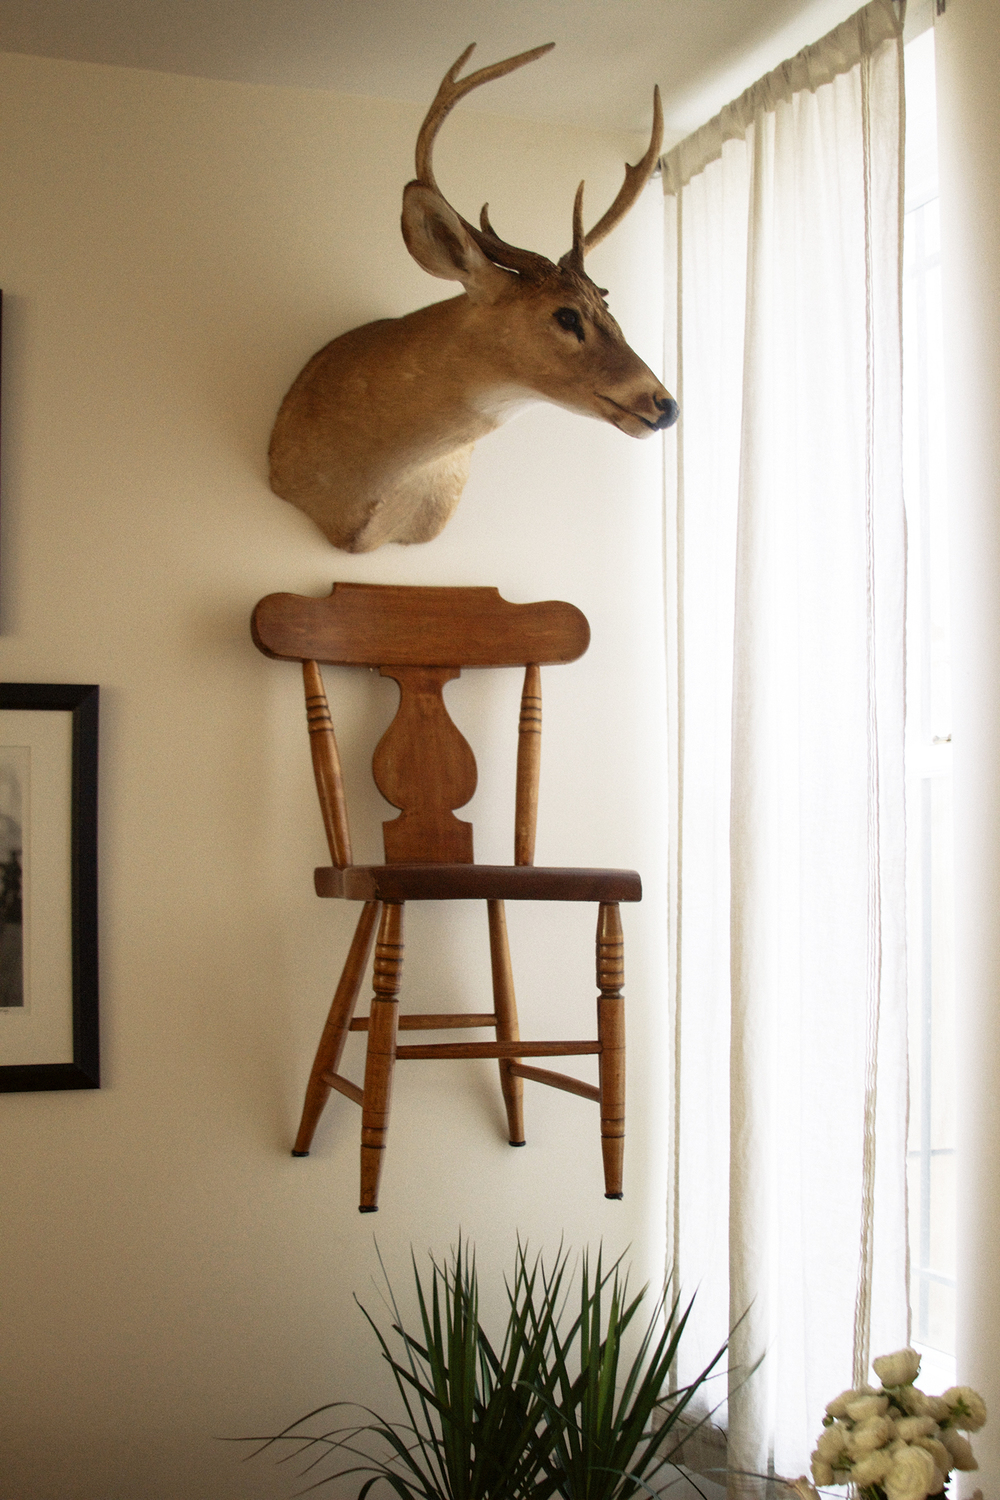 Over the years I've lived in some tiny spaces, so I've borrowed from the Shaker tradition and hung chairs on the walls to save room.